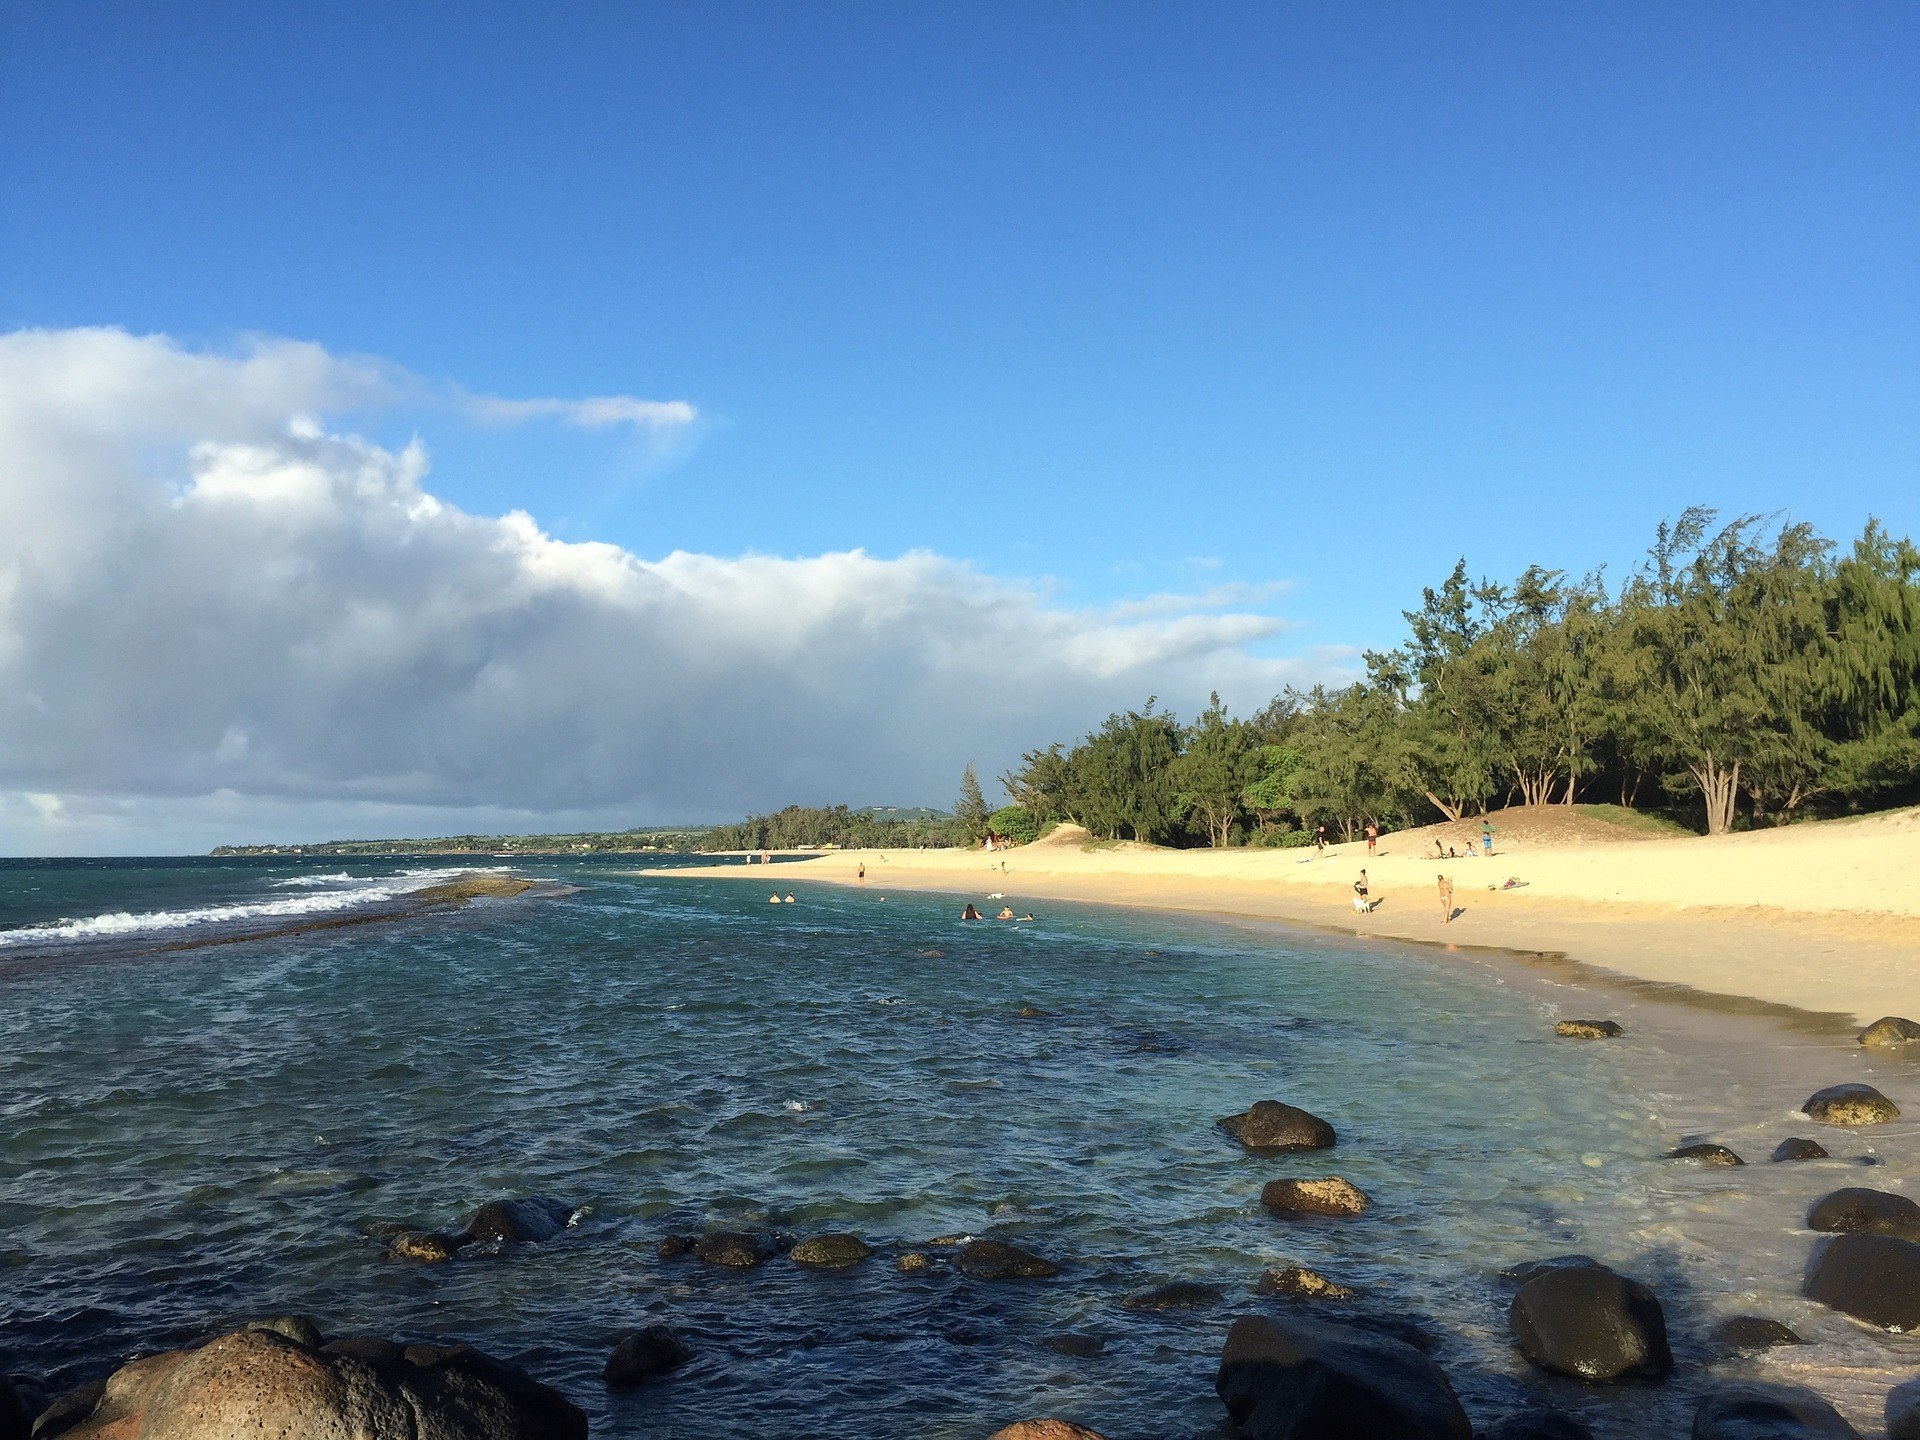 Beach at Paia - Coolest Place to Stay in Maui